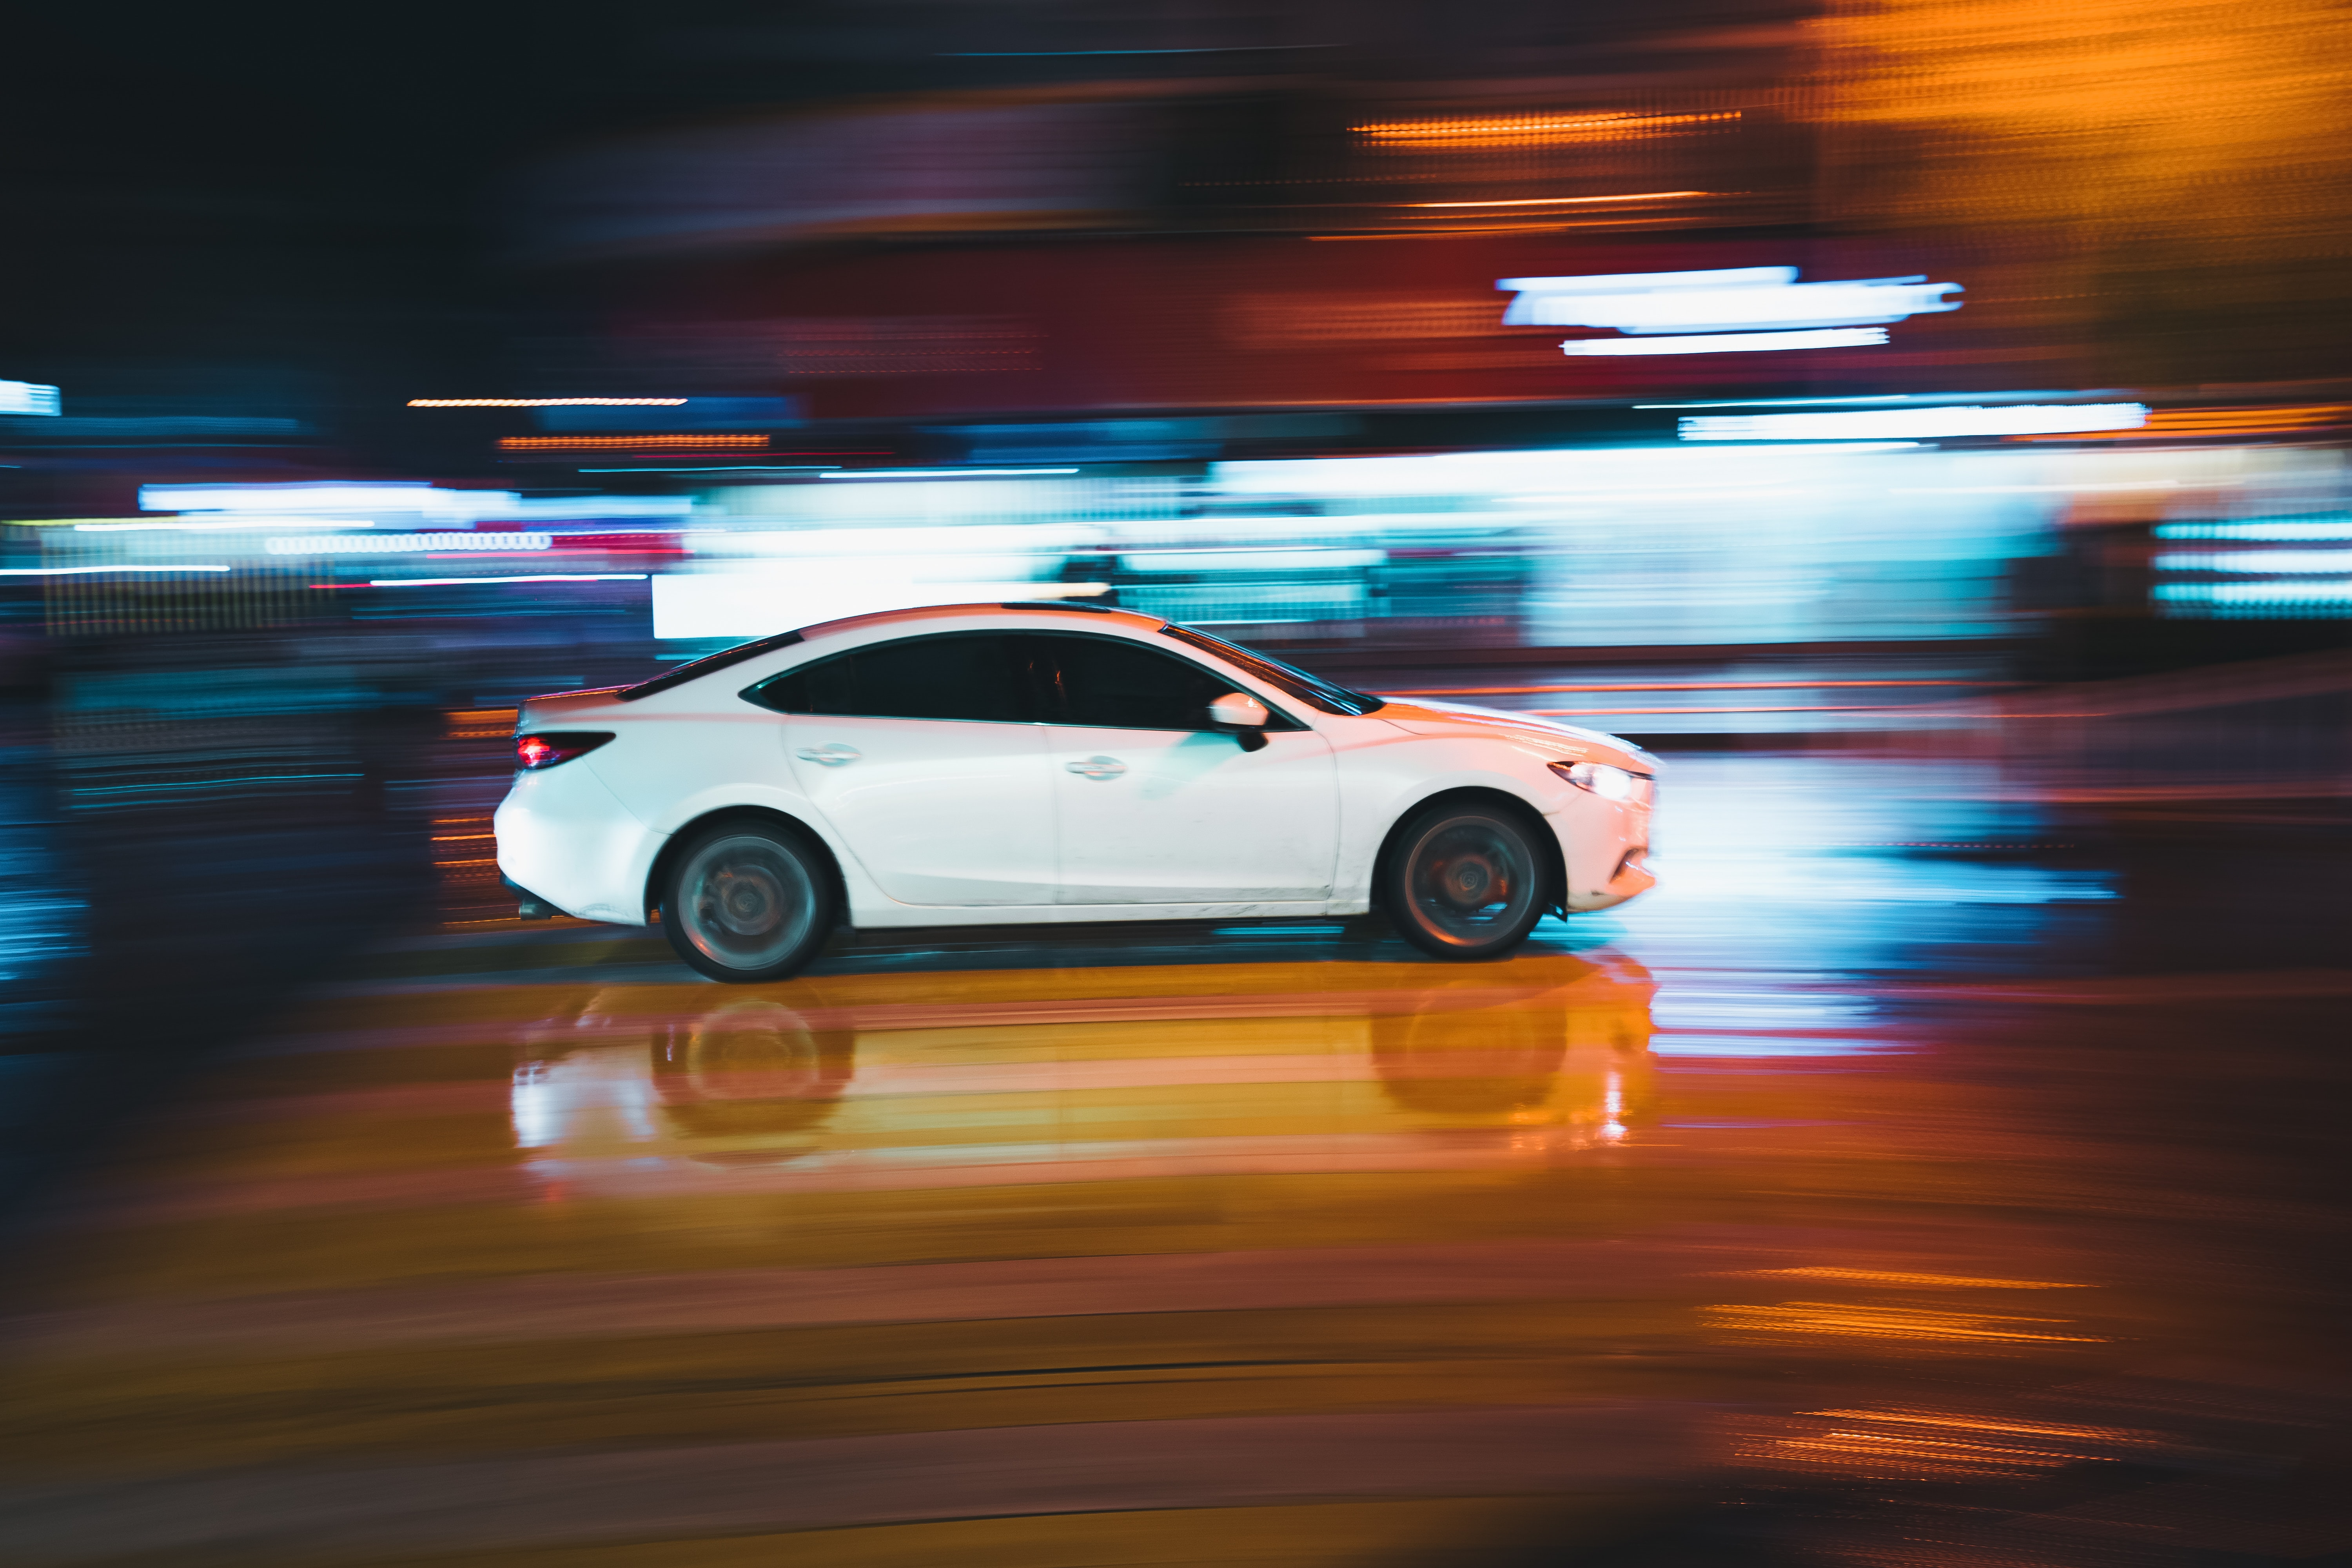 Car Wallpapers | 52 Best Free Car Wallpaper, Wallpaper, Car Background, And  Car Photos On Unsplash